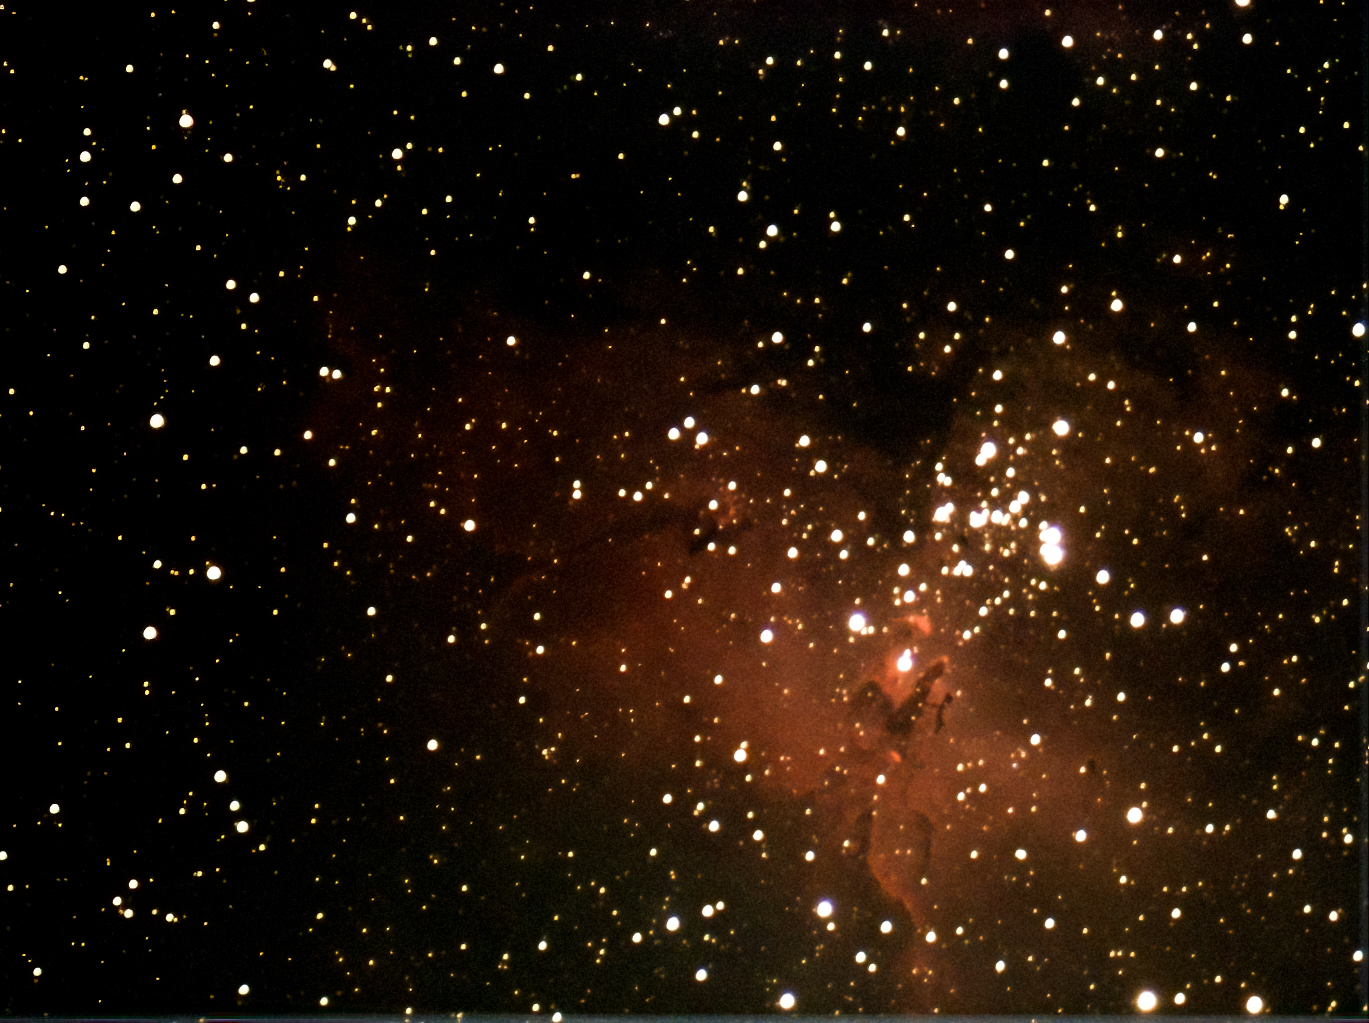 M16 'The Pillars of Creation' (Andrew Farrow) Taken 04.08.21 ES 127 Triplet. Atik Infinity camera 30secs exps for 1020sec total Lightroom and DeNoise processing No filters used